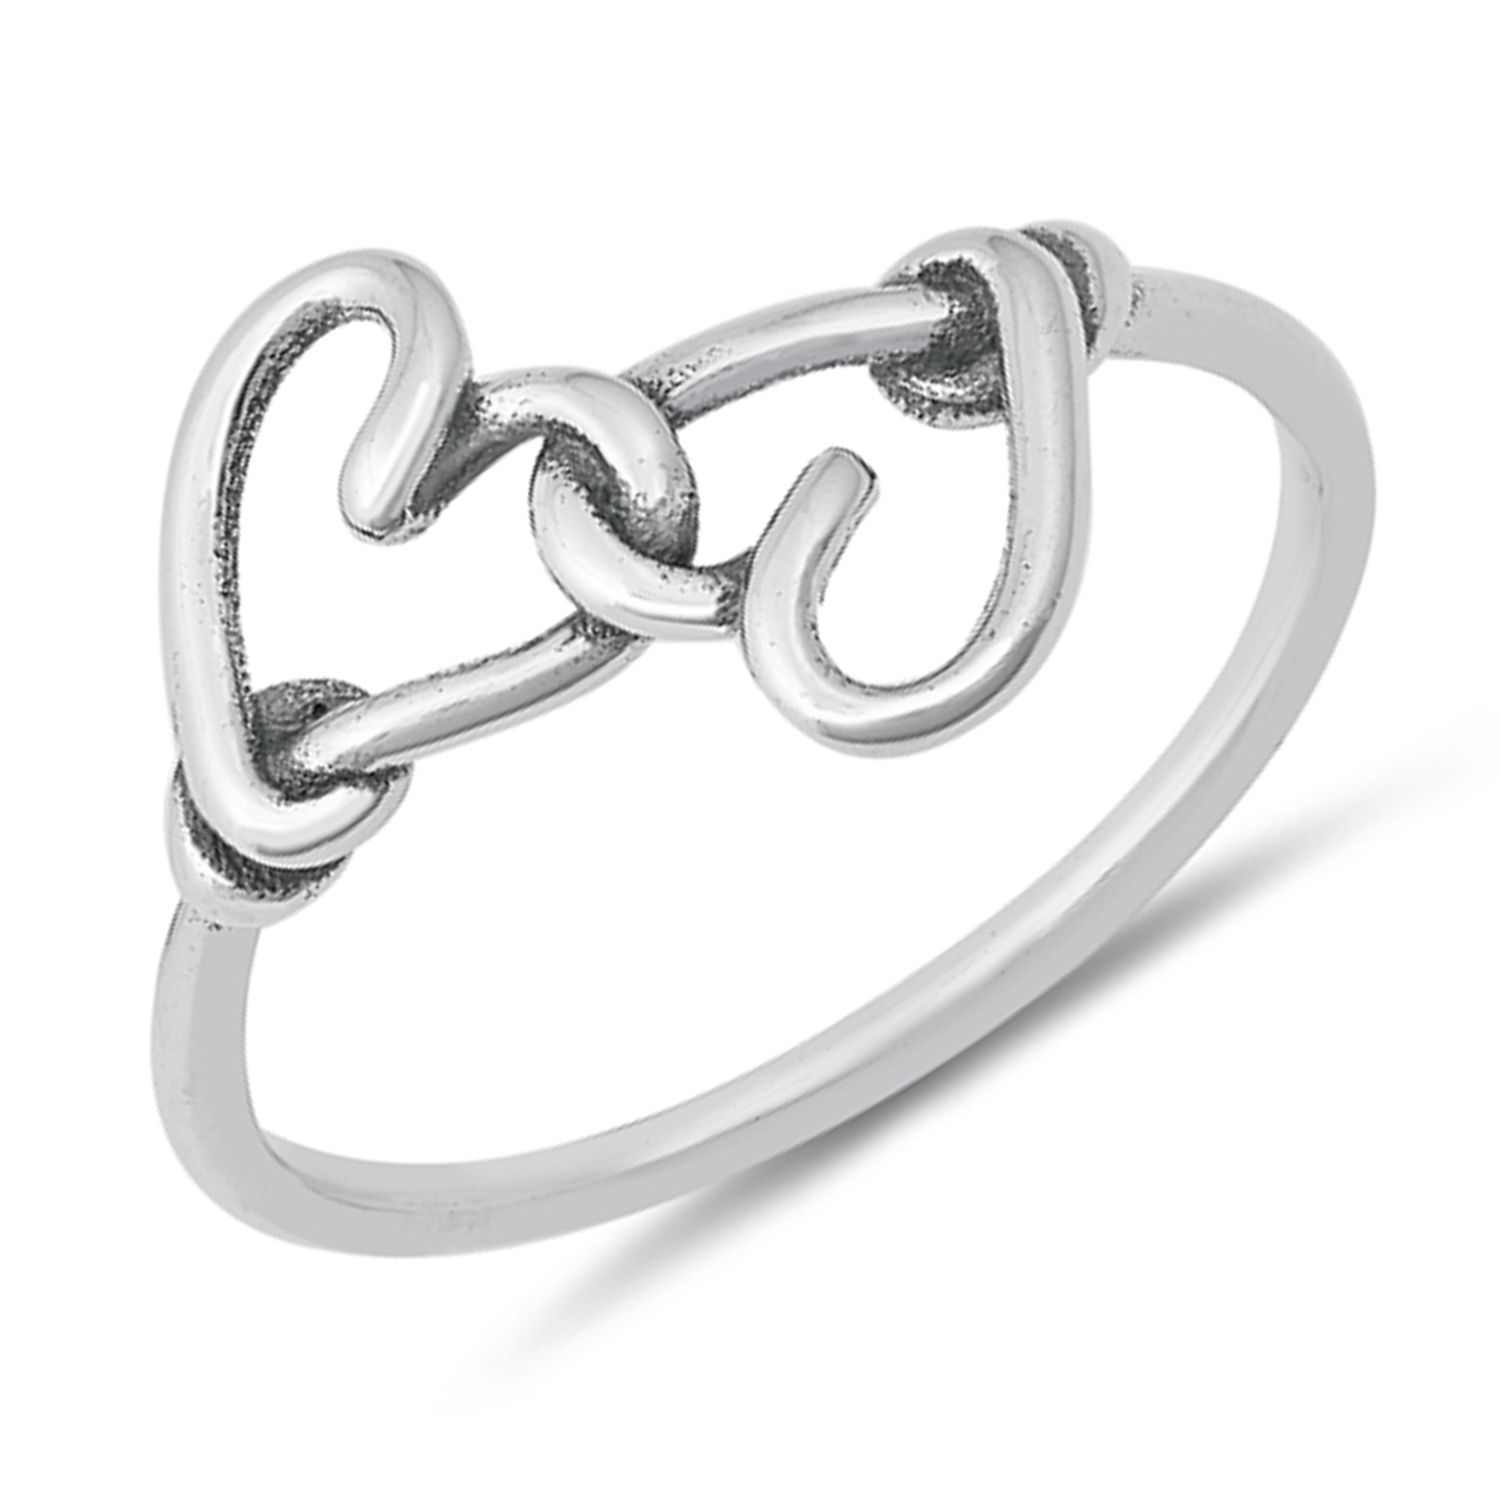 Heart Crown Ring Genuine Sterling Silver 925 Clear CZ Face Height 8 mm Size 8